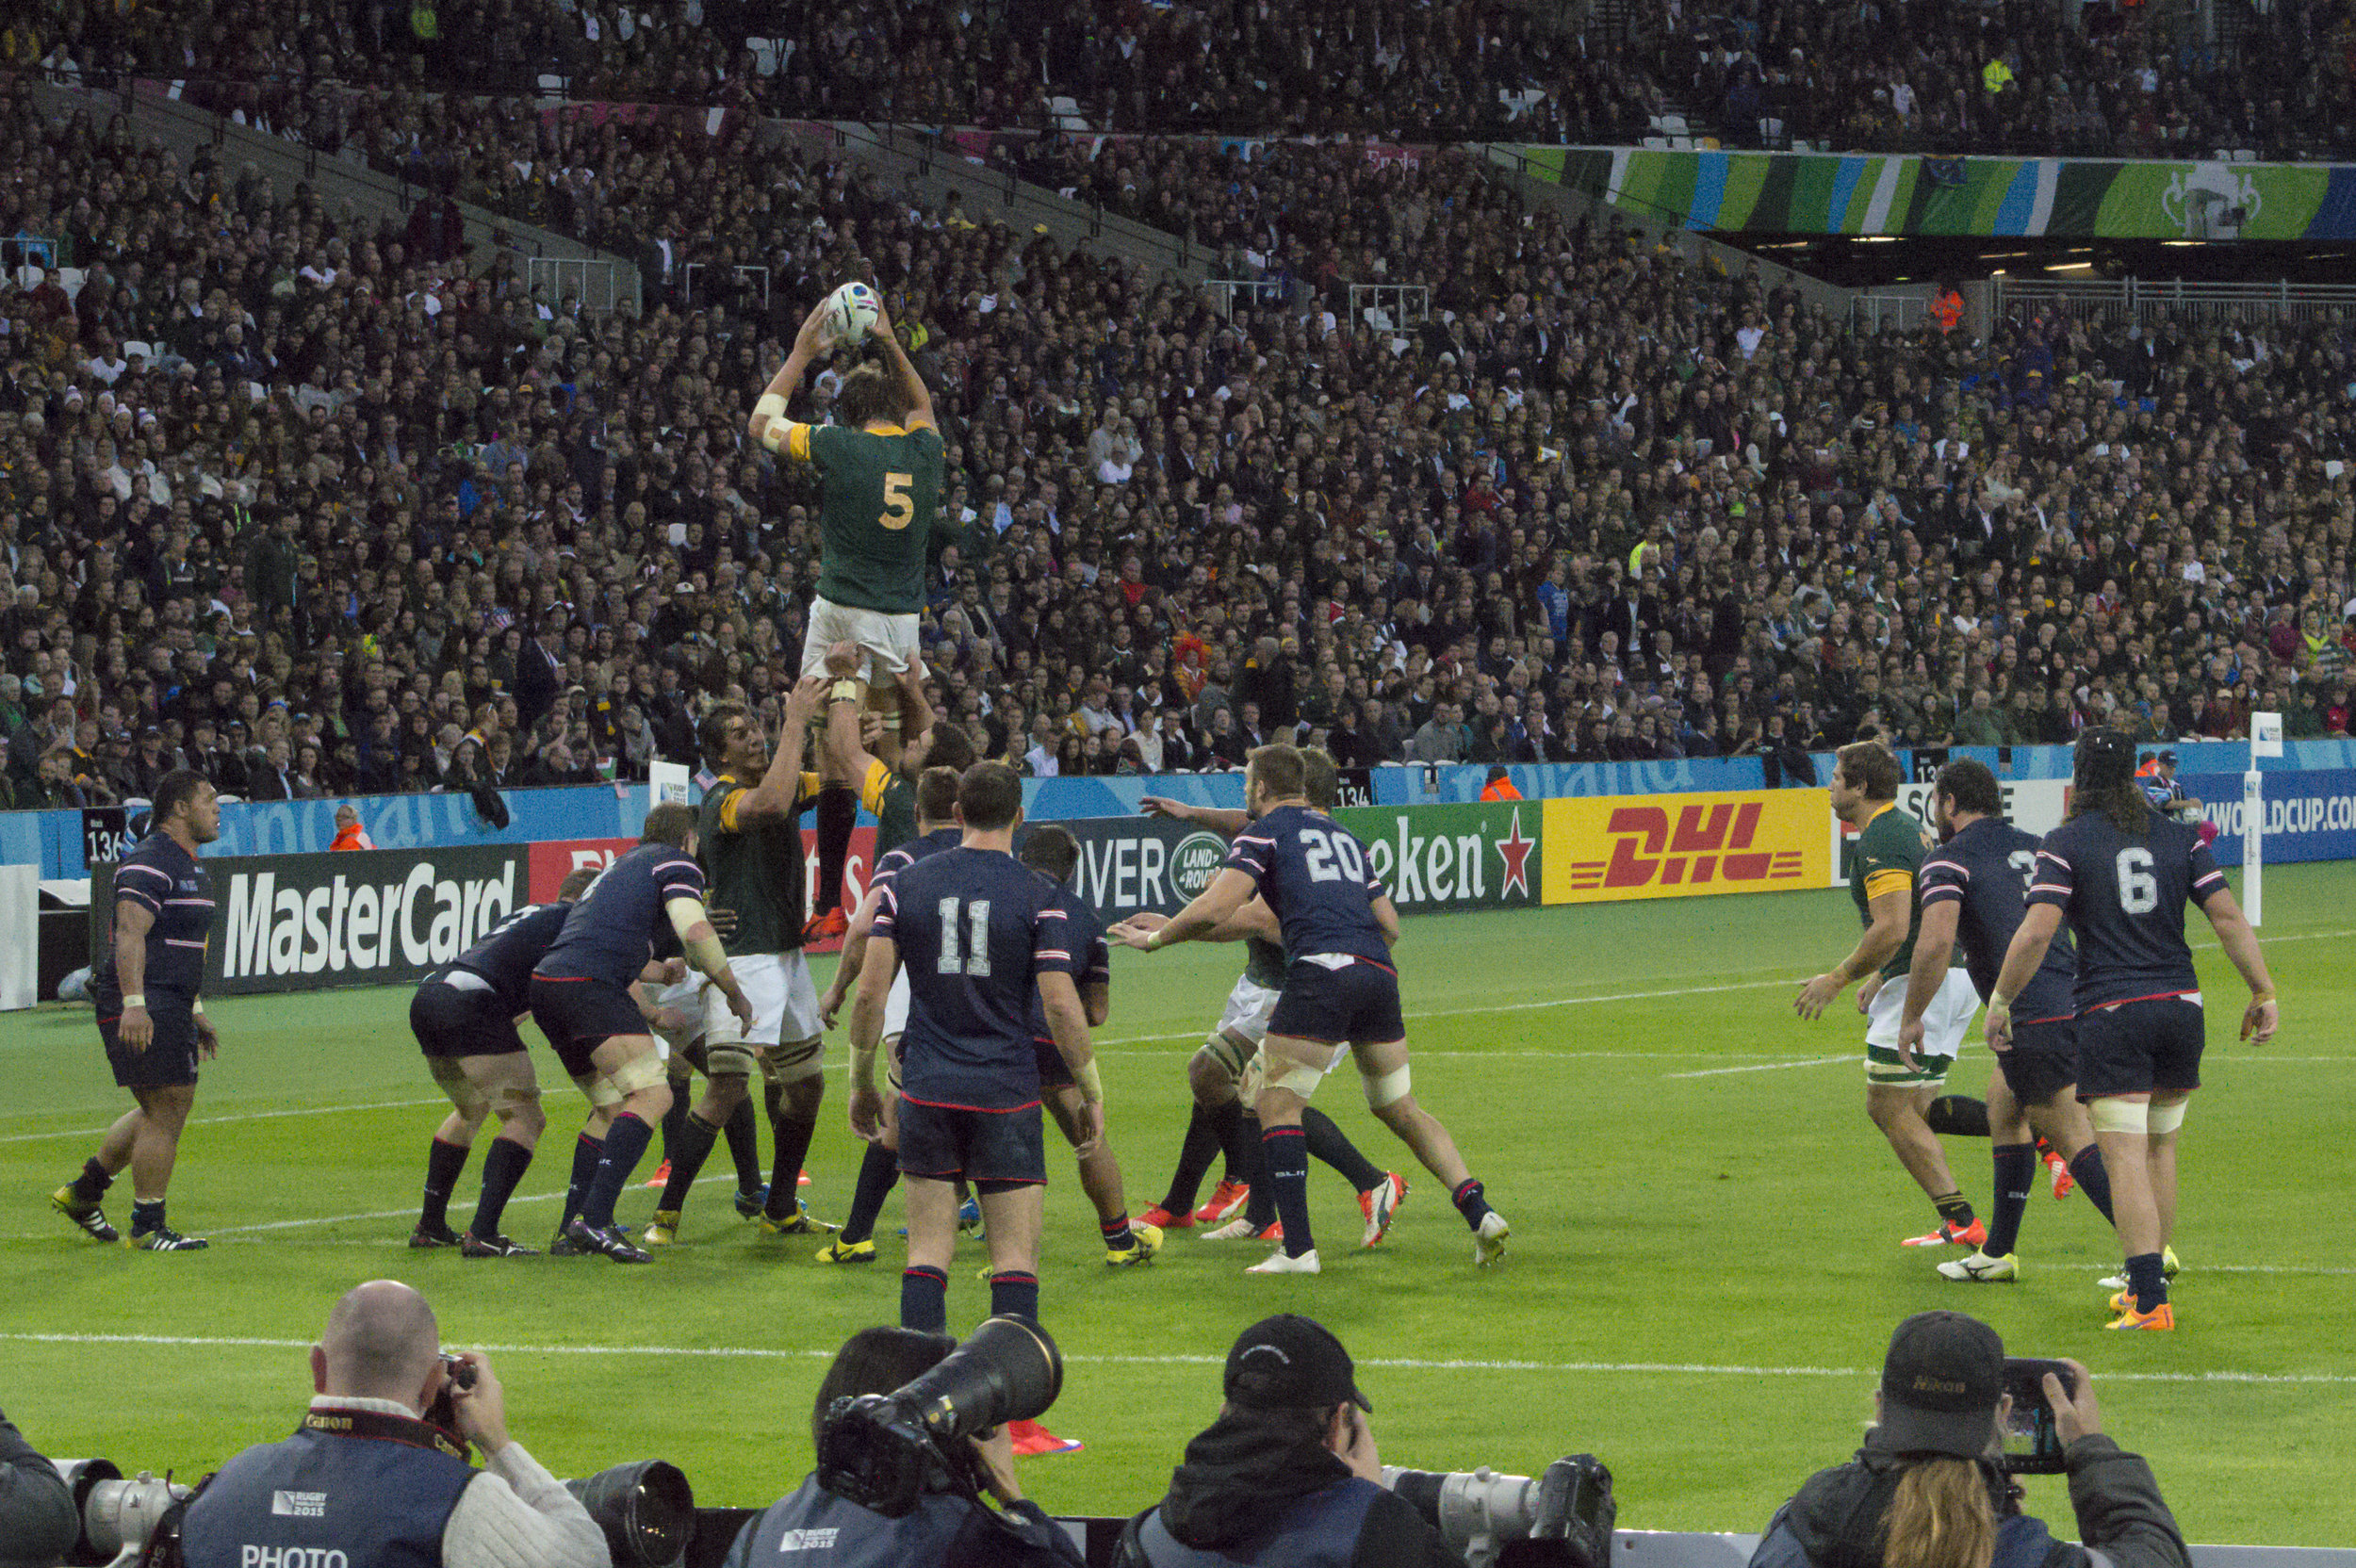 South Africa in action against USA.